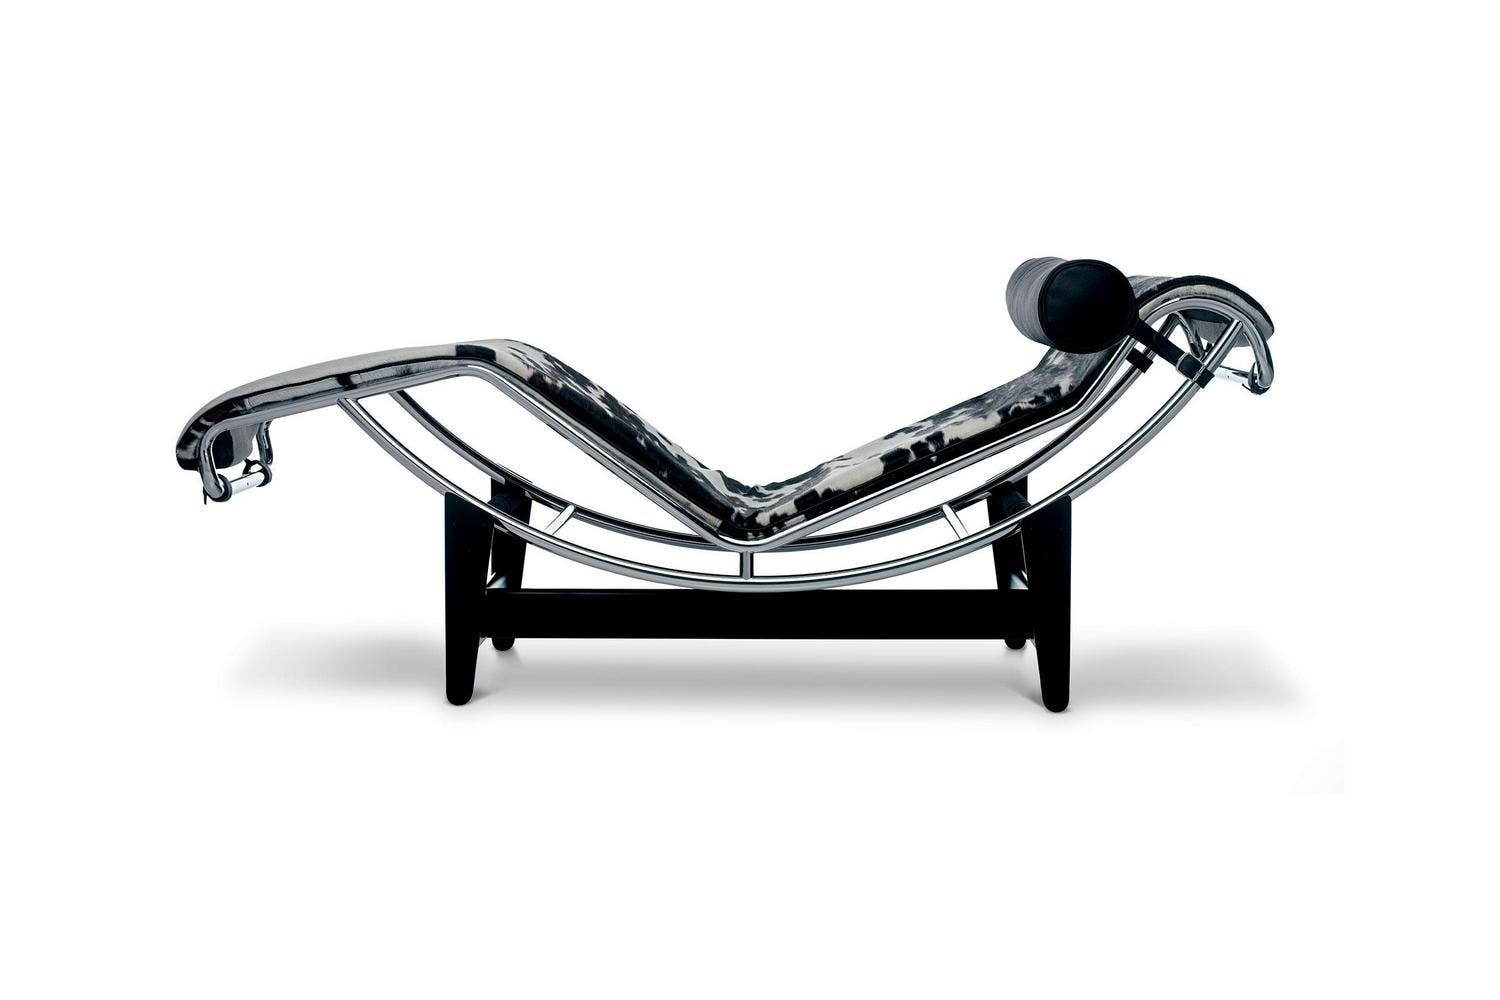 corbusier chaise black le style longue product